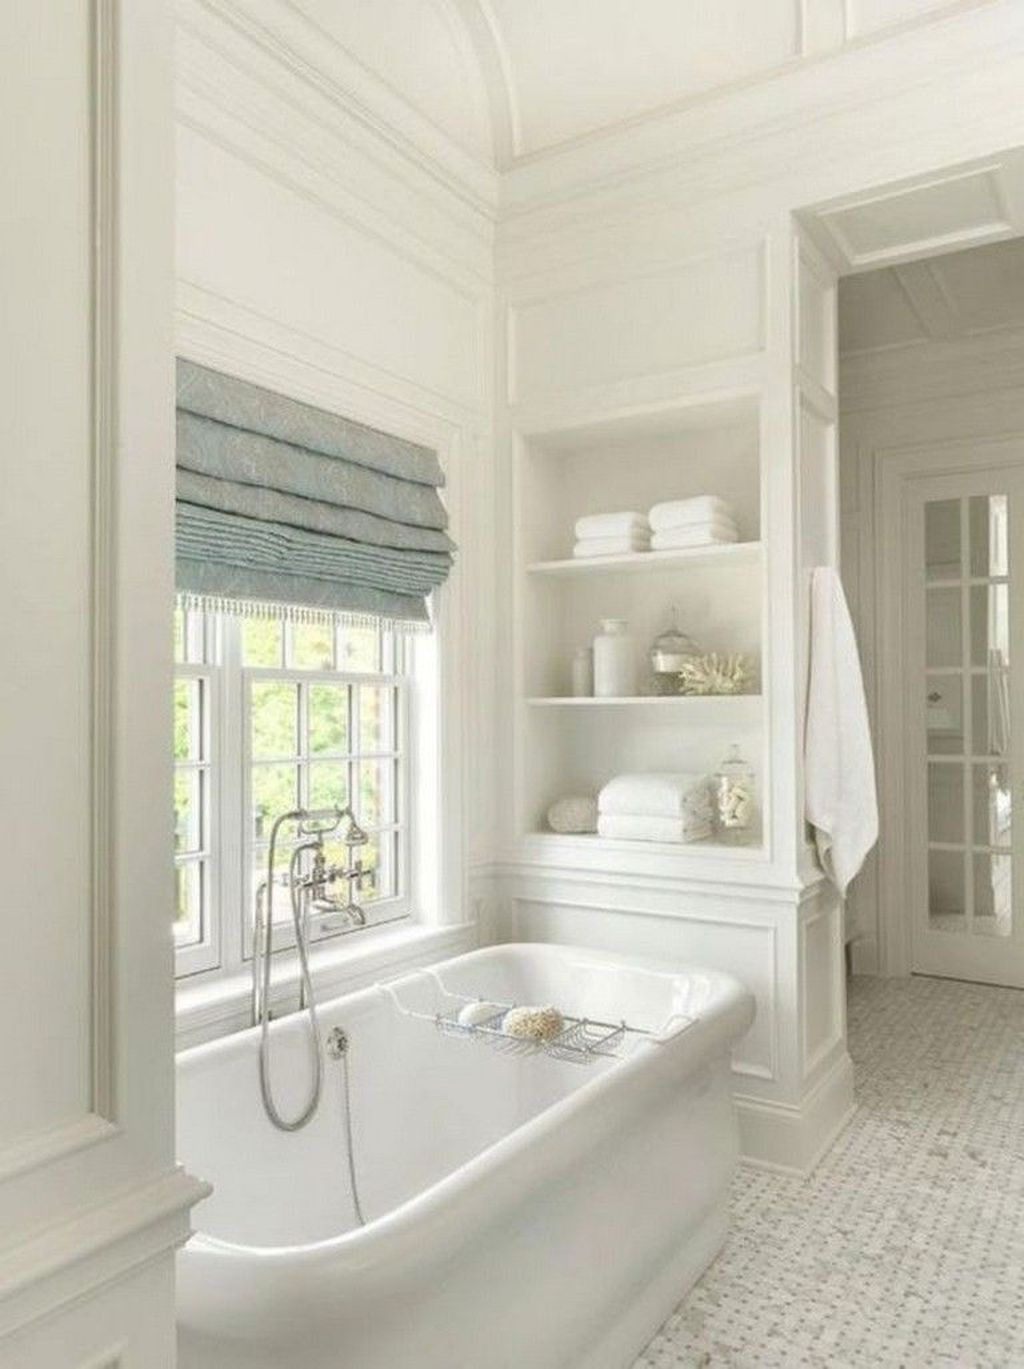 Popular And Stylish Small Master Bathroom Remodel Ideas 19 Hmdcrtn